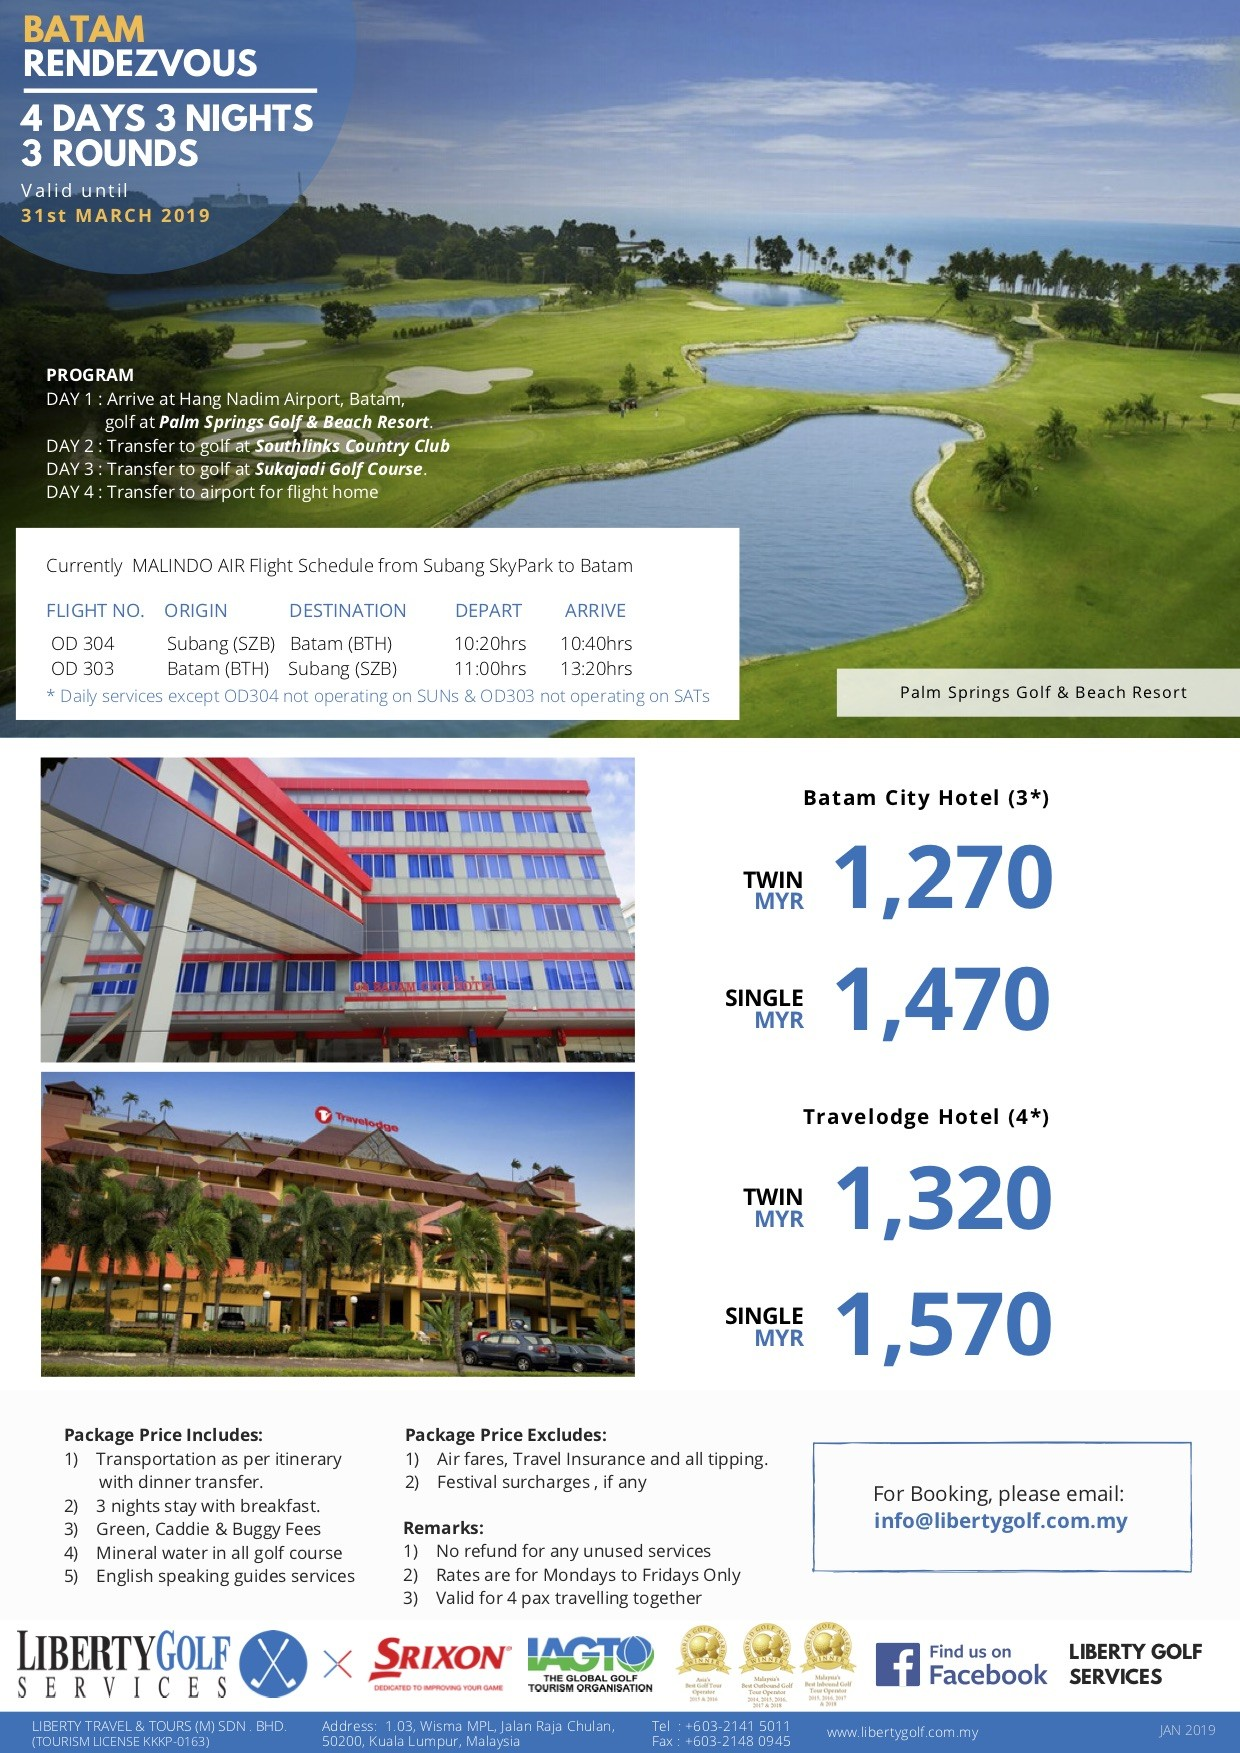 March 2019 Calendar Landscape Mejores Y Más Novedosos Liberty Golf Batam Golf Package 4d3n3r Of March 2019 Calendar Landscape Más Recientemente Liberado December 2019 Calendar